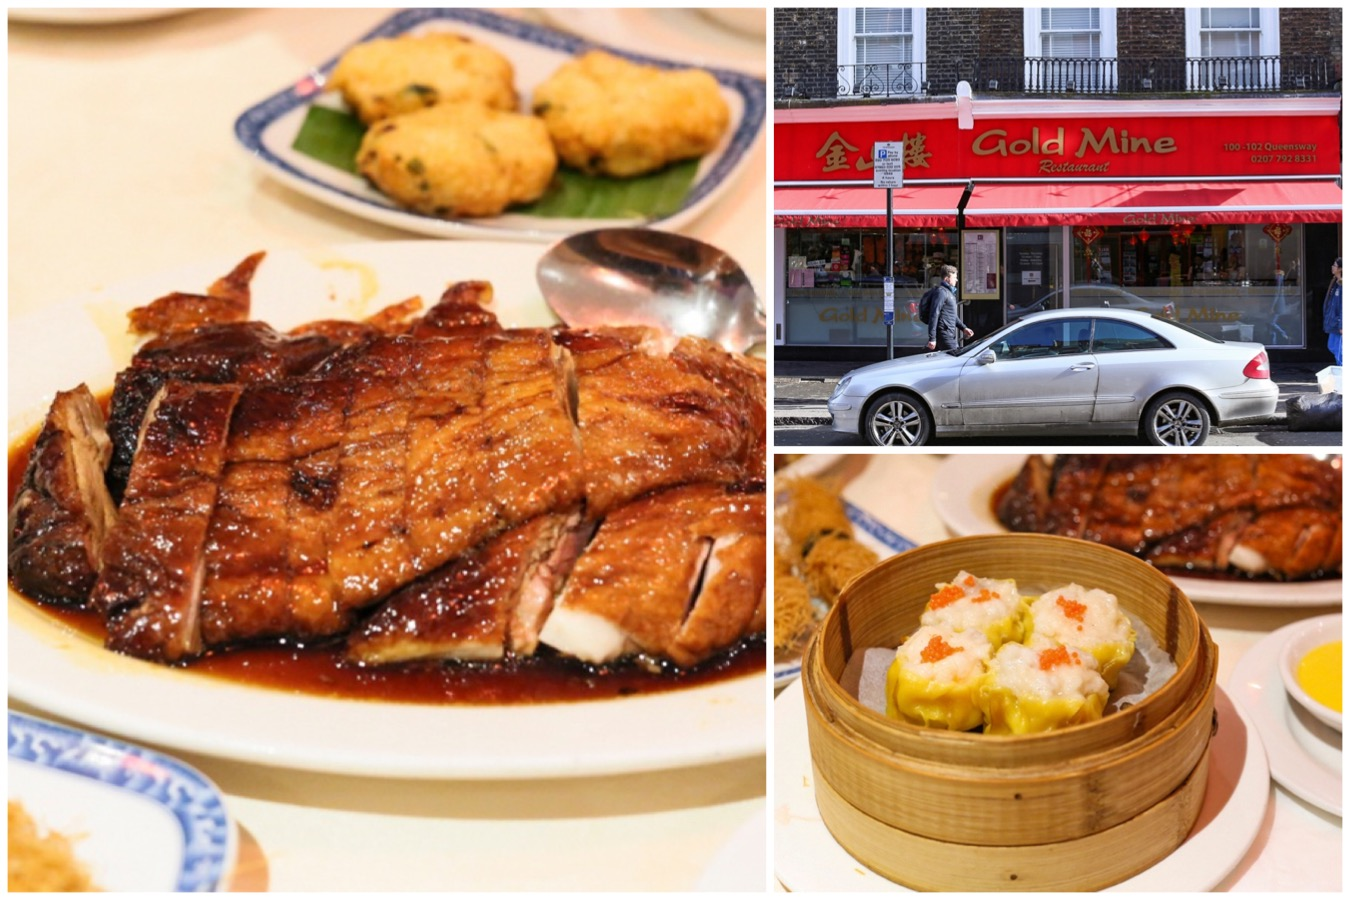 Gold Mine 金山楼 - Said To Be The Best Chinese Restaurant In London, With Special Roast Duck